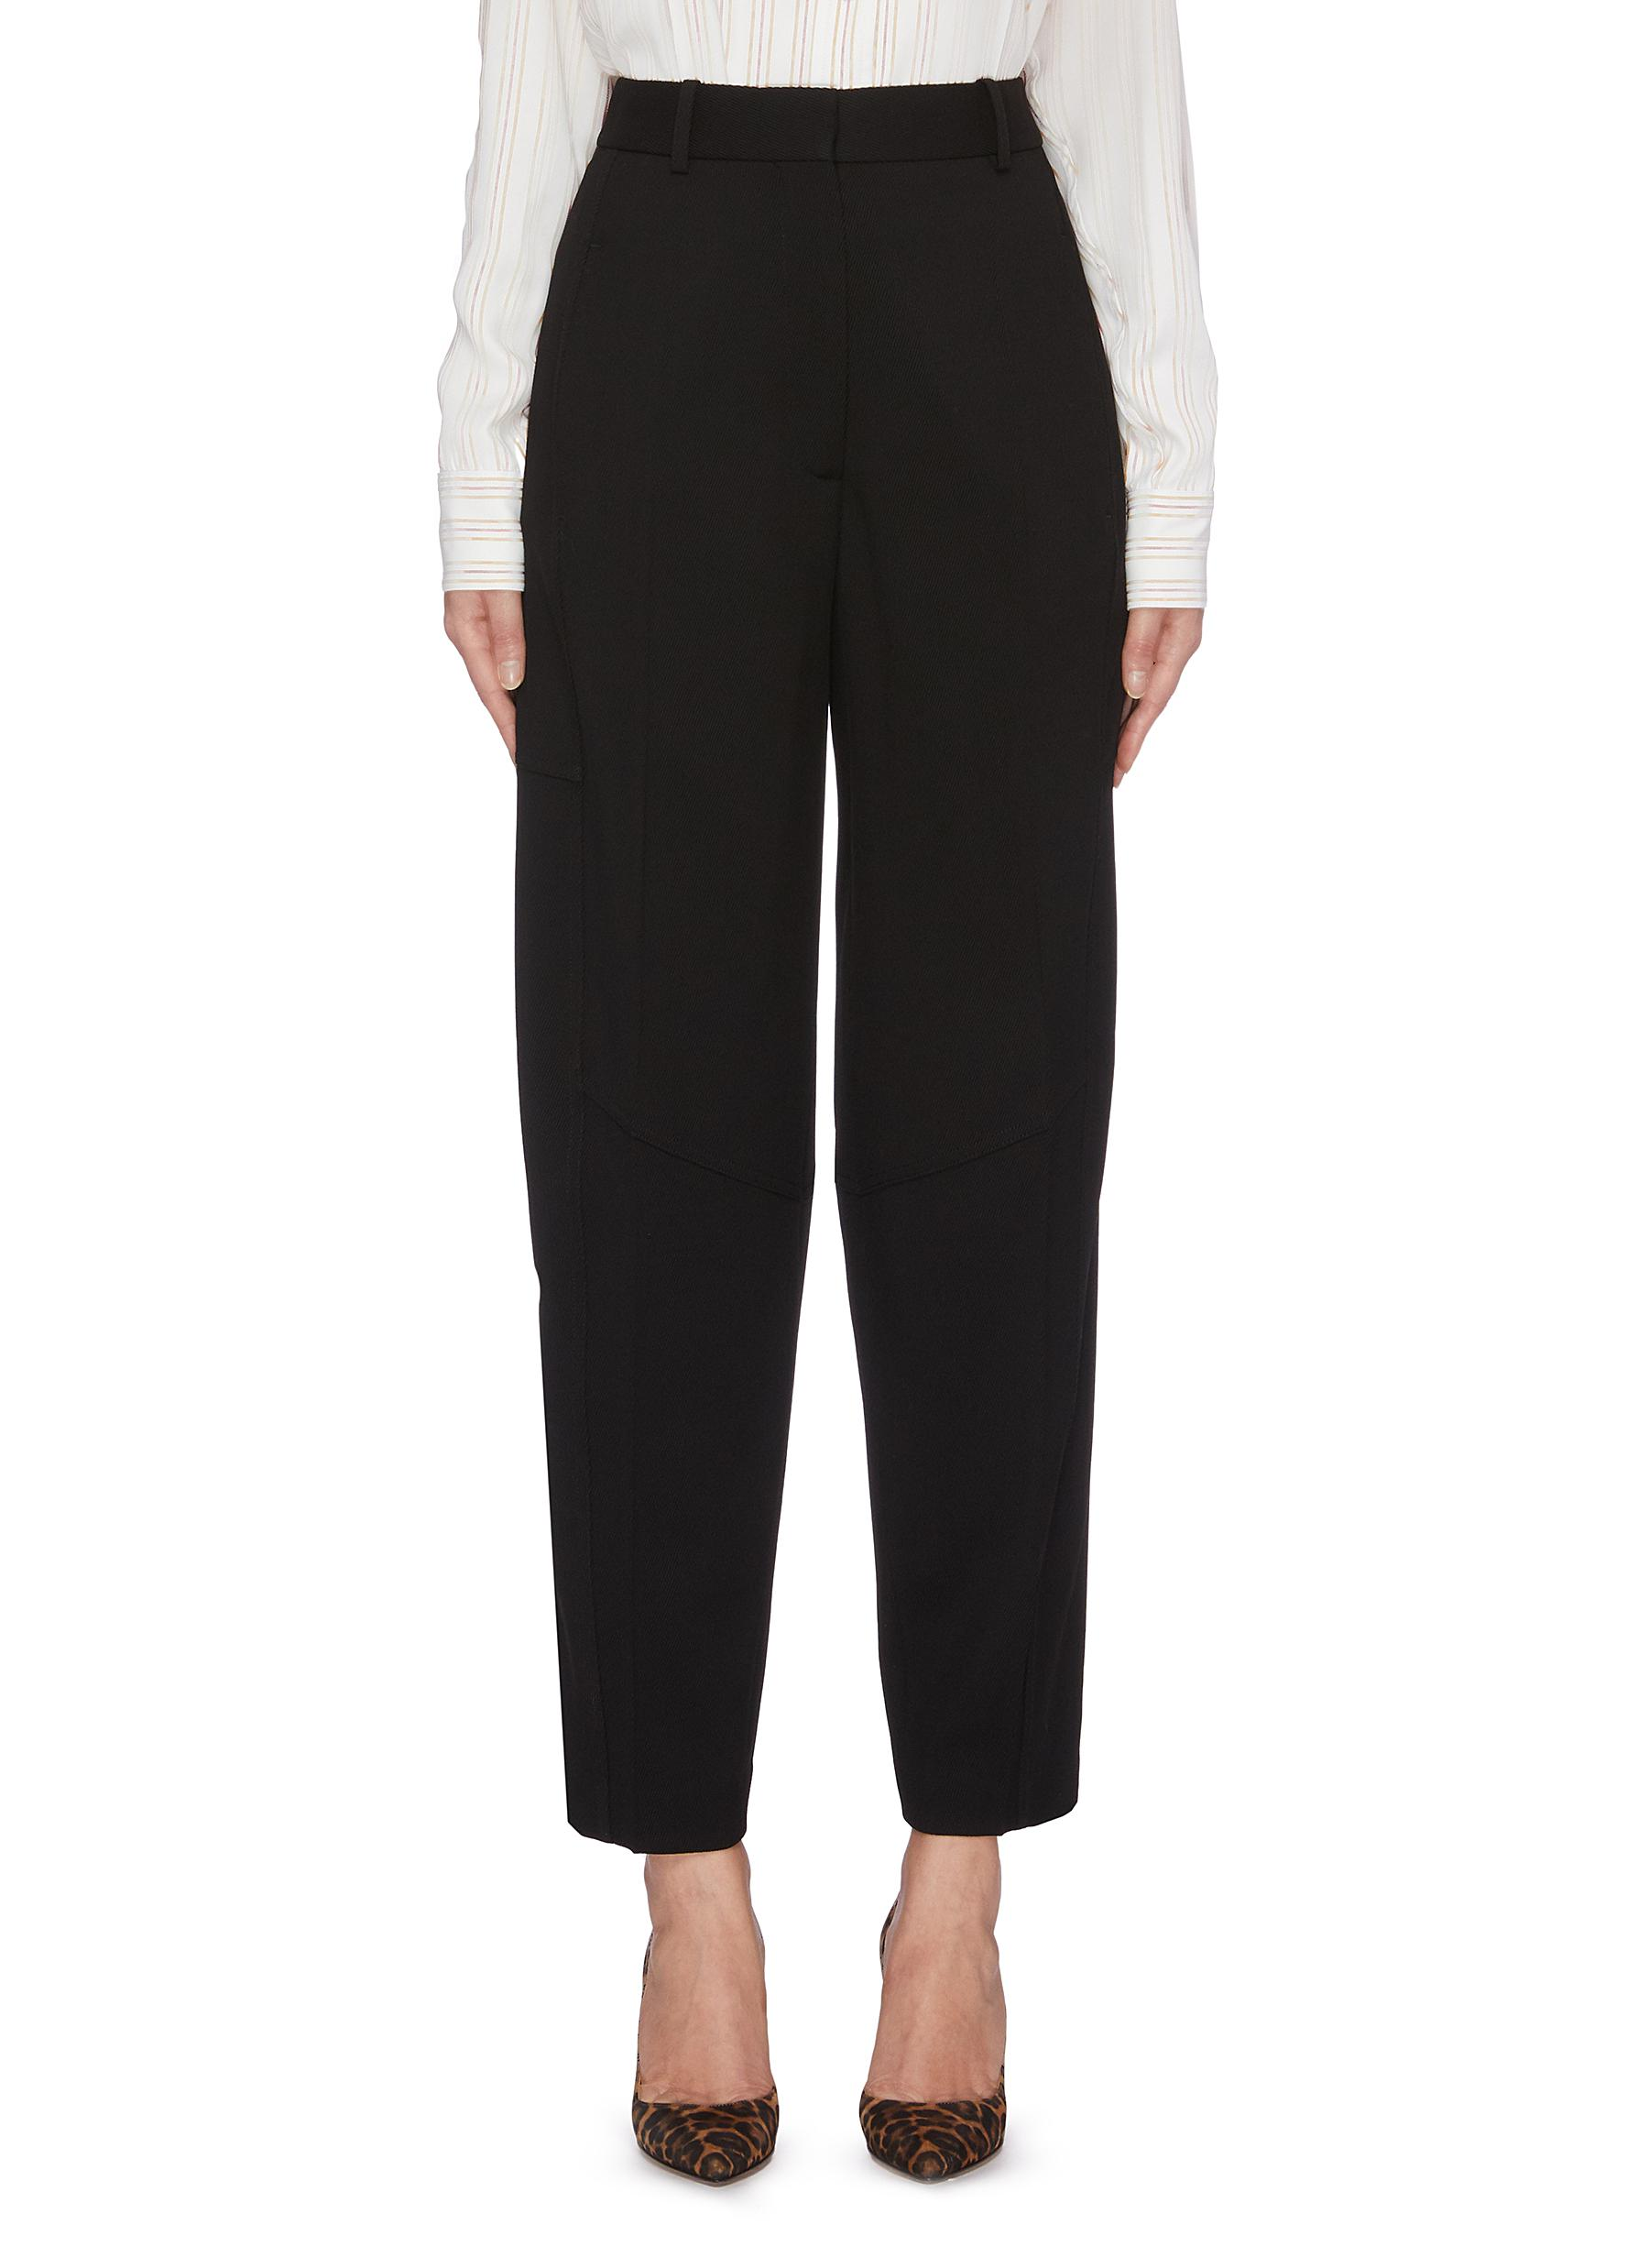 Panelled tapered suiting pants by Victoria Beckham